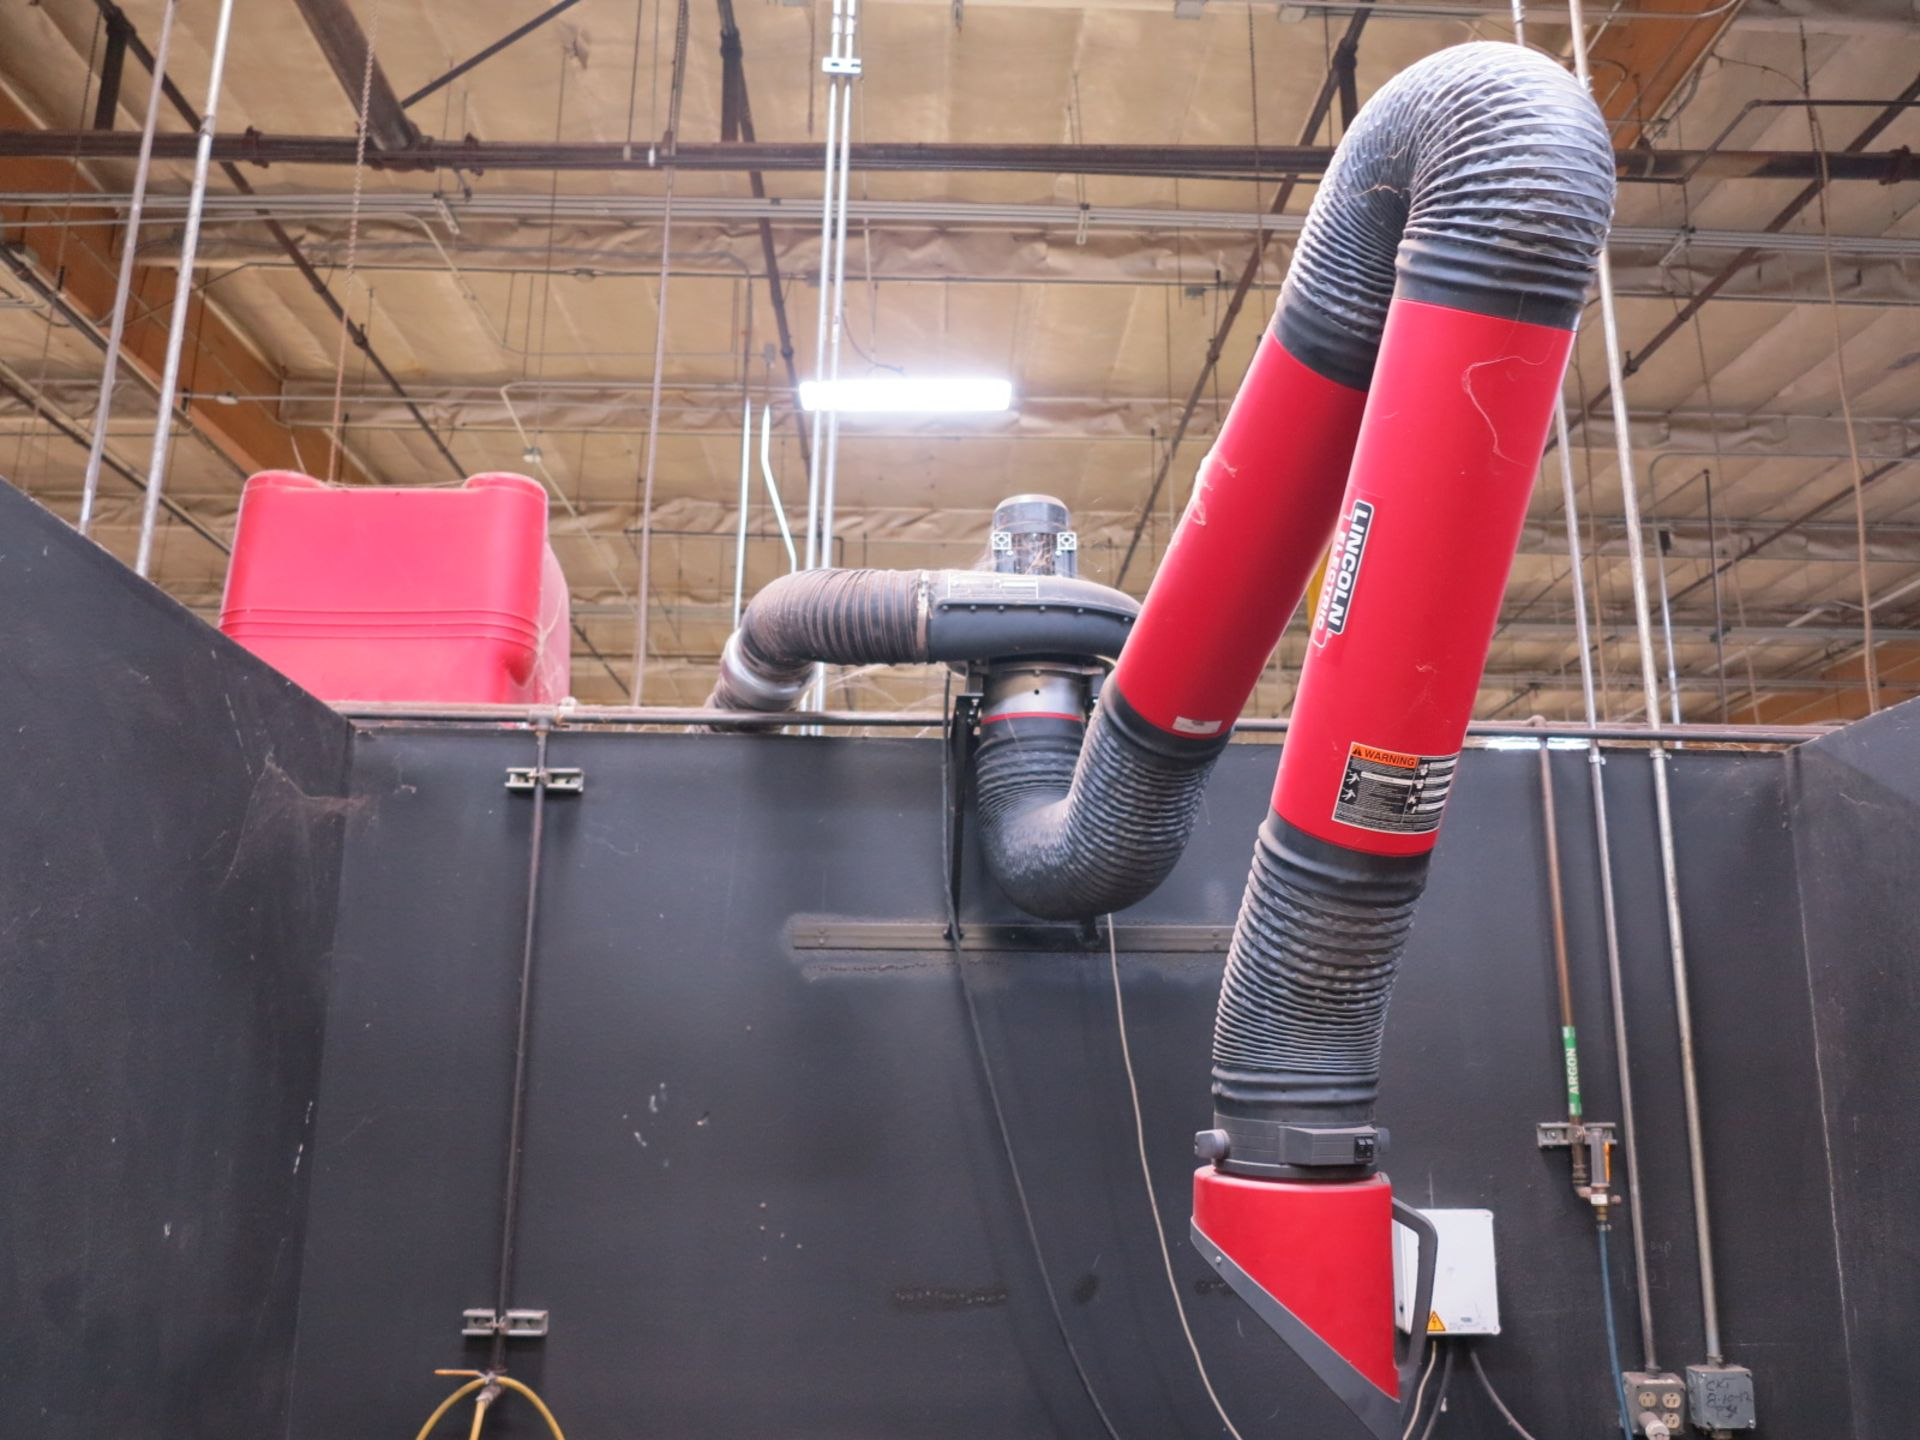 Lot 719 - LINCOLN ELECTRIC STATIFLEX 200-M FUME EXTRACTOR, (2) ARMS W/ BLOWERS